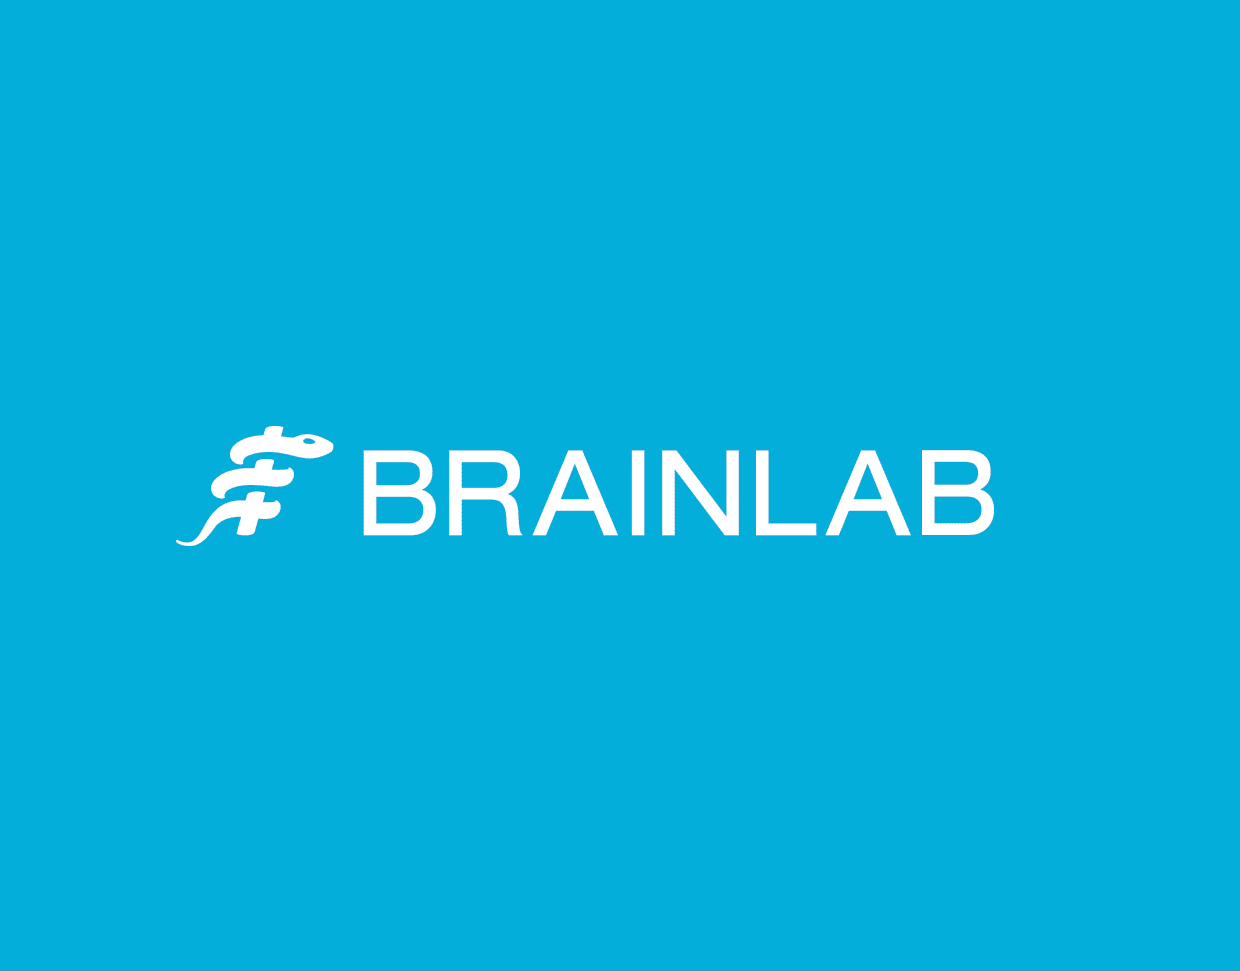 Brainlab Corporate Design